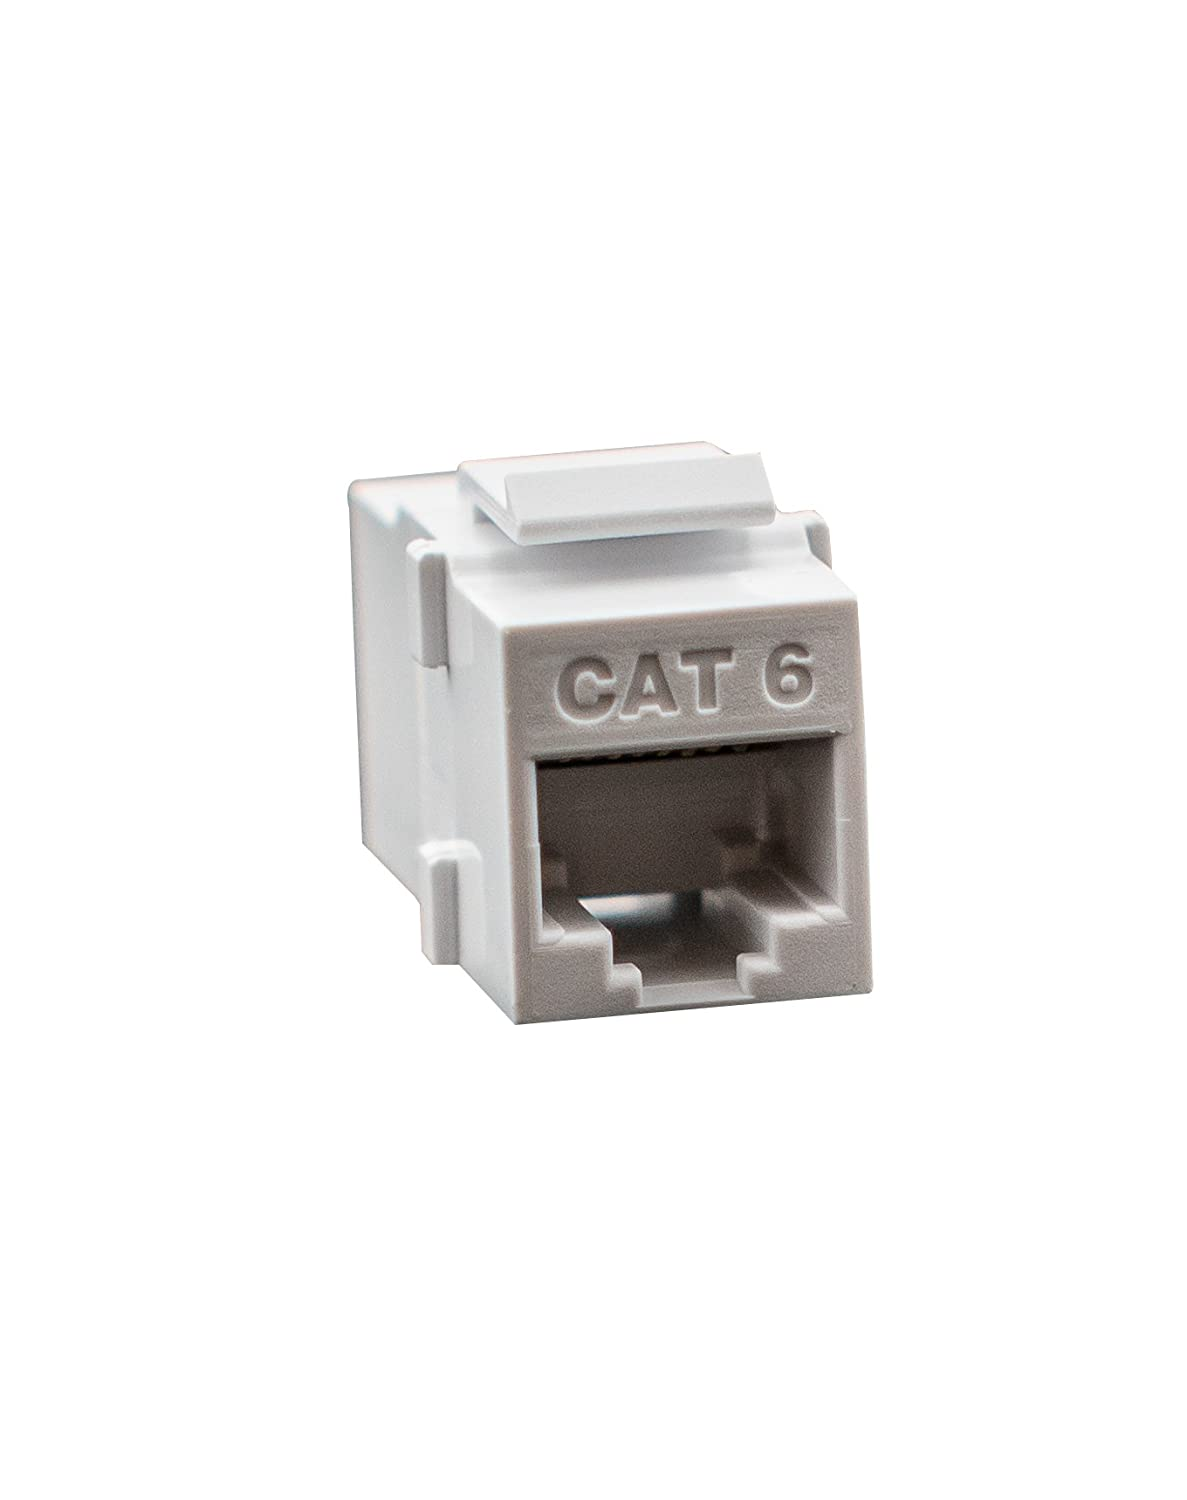 Legrand On Q Cat 6 Coupler Keystone Insert White Wp3452whv1 Rj45 Wiring Diagram Get Free Image About Plug Adapters